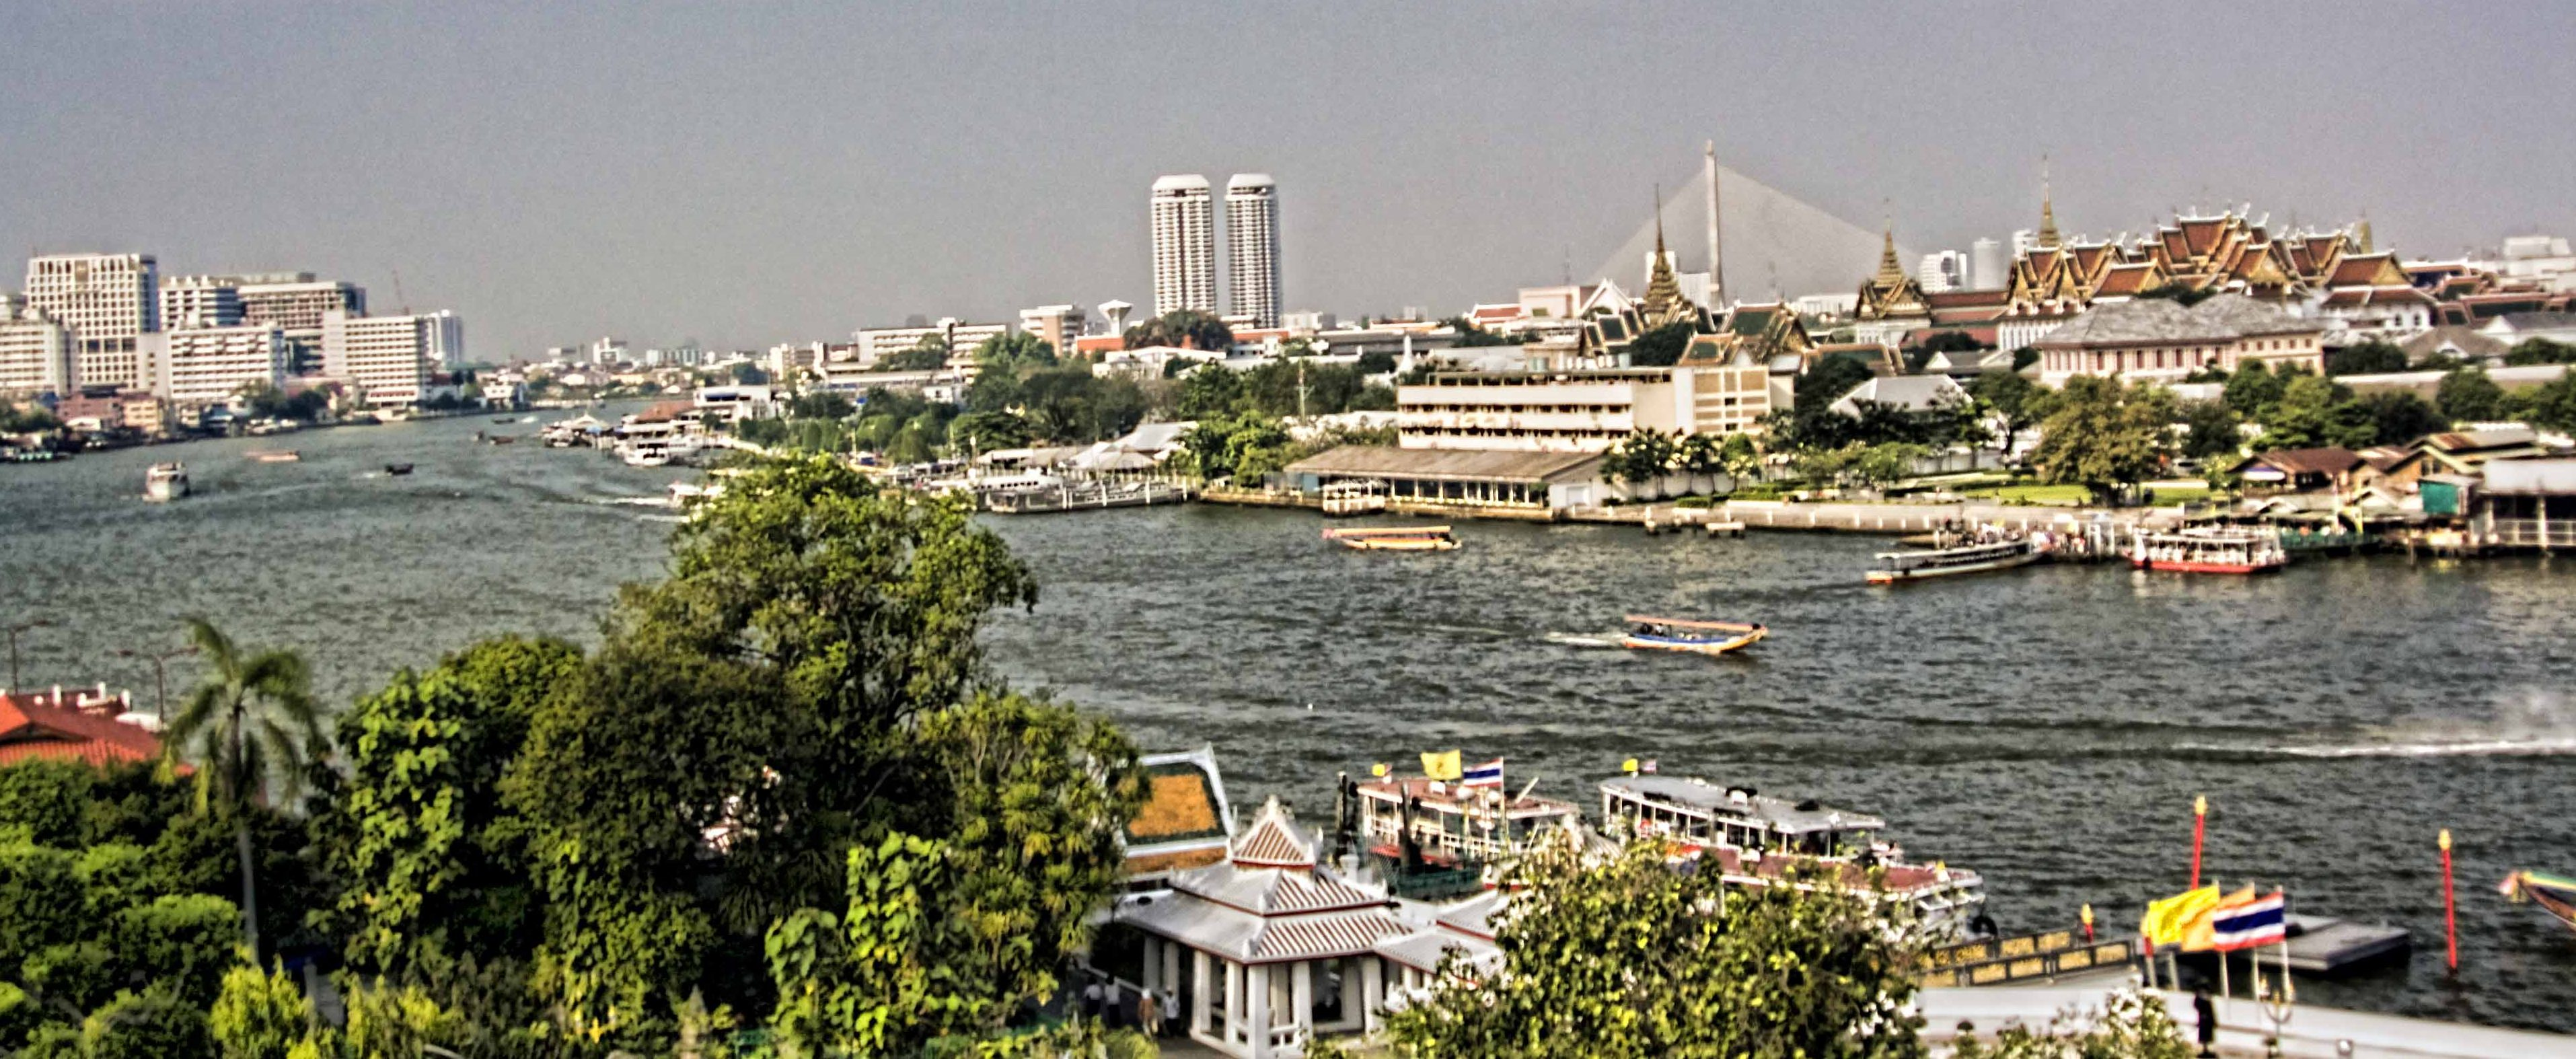 View of Chao Praya River and Royal Palace from the top terrace